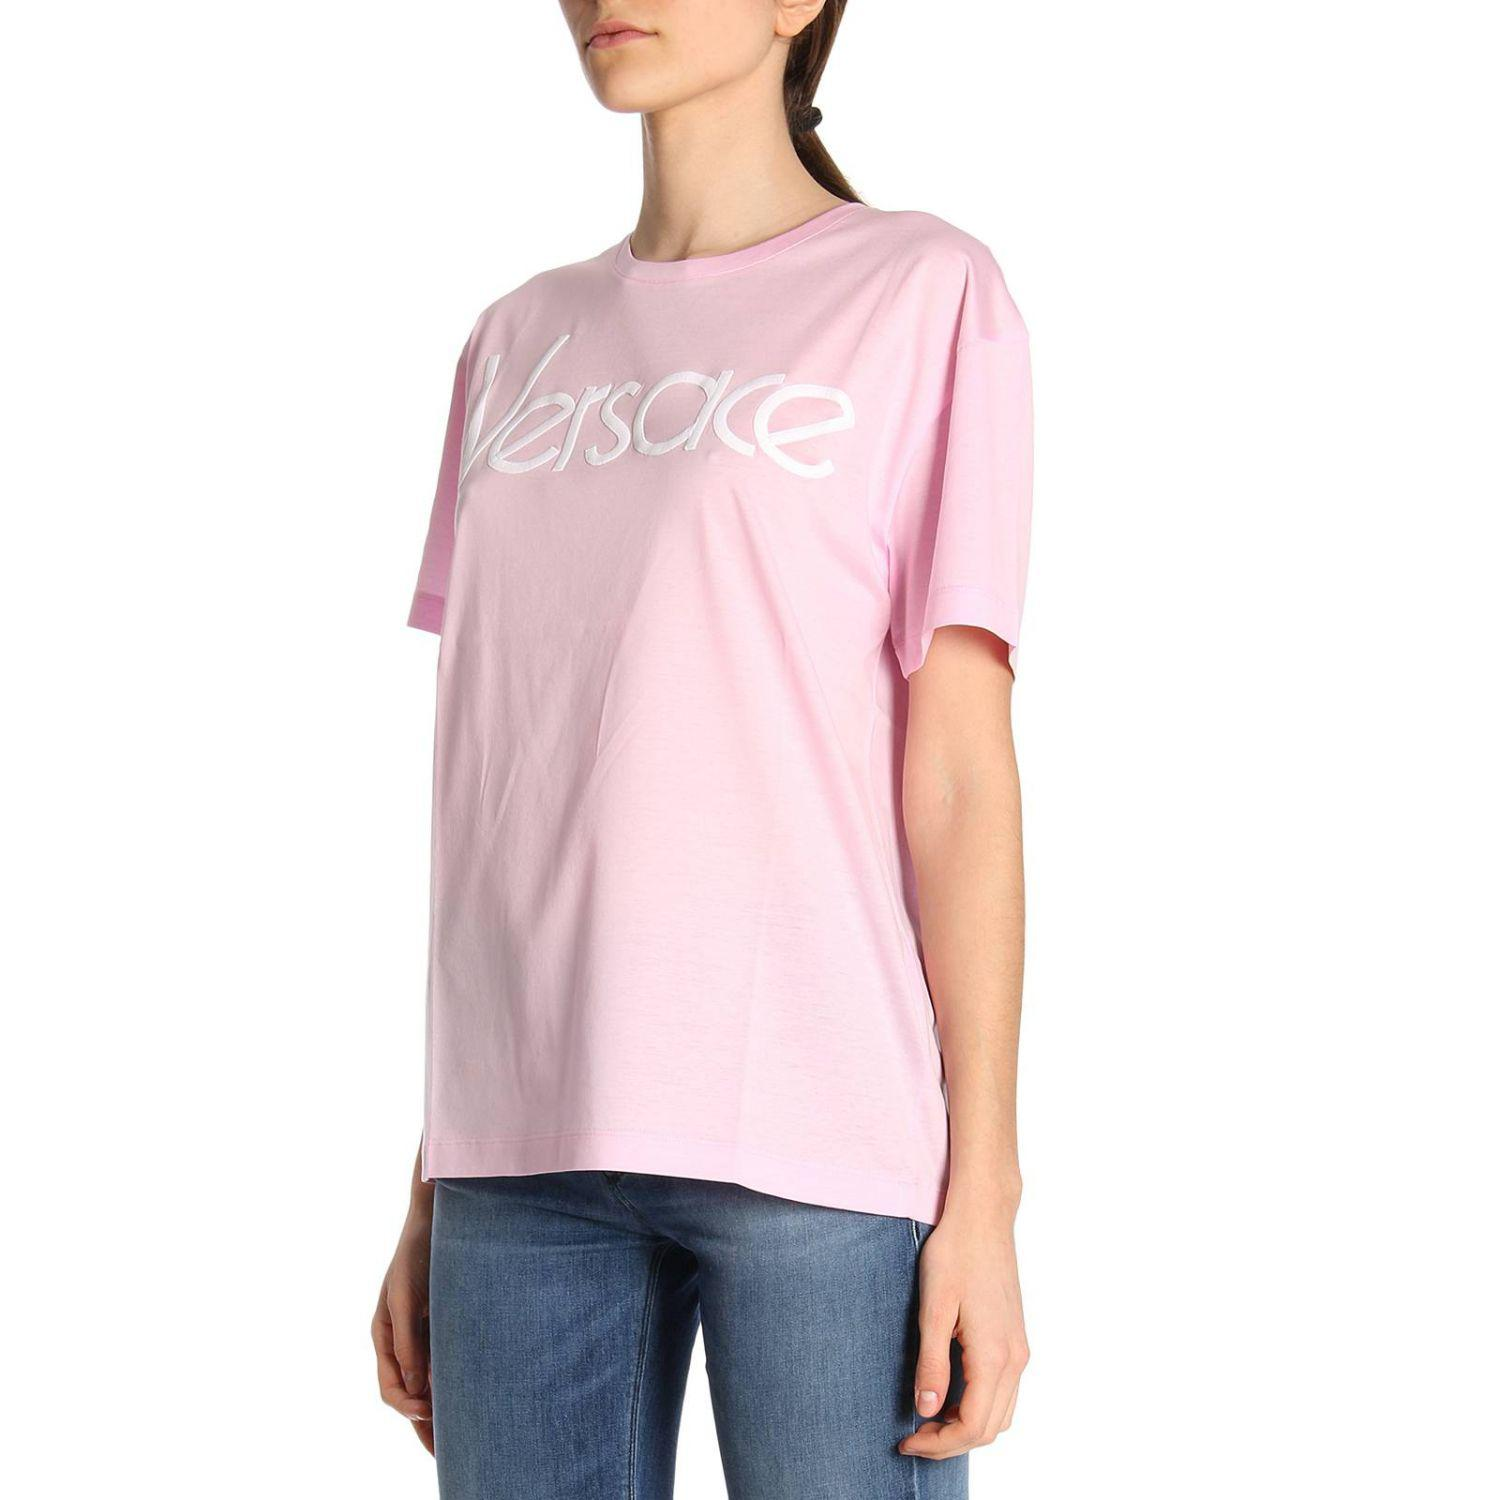 7bba2d66 Versace T-shirt Women in Pink - Lyst